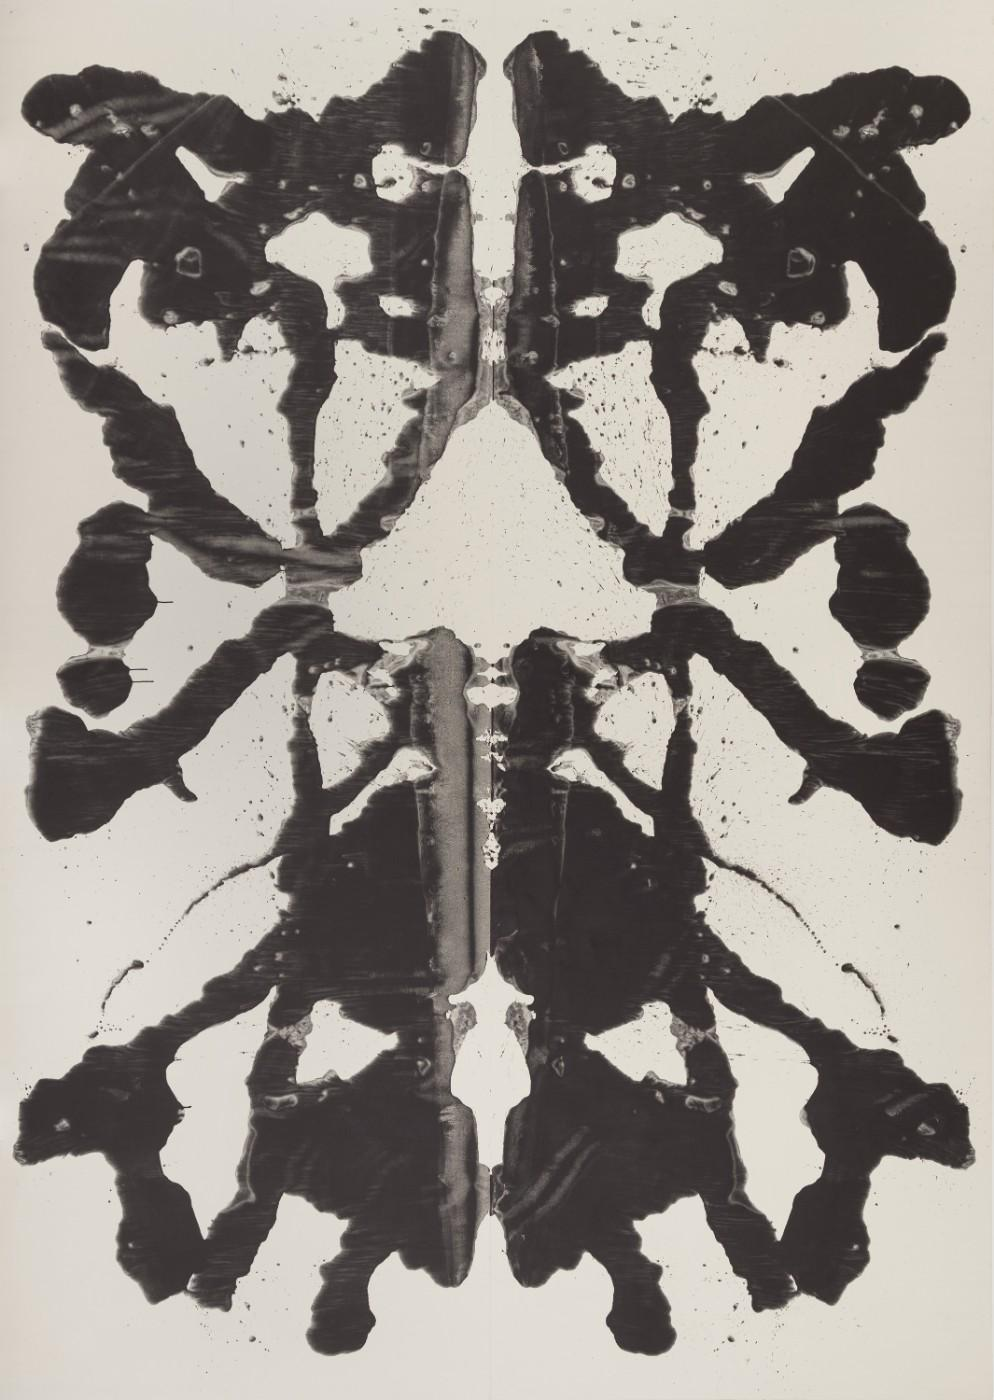 Andy Warhol (1928–1987), Rorschach, 1984